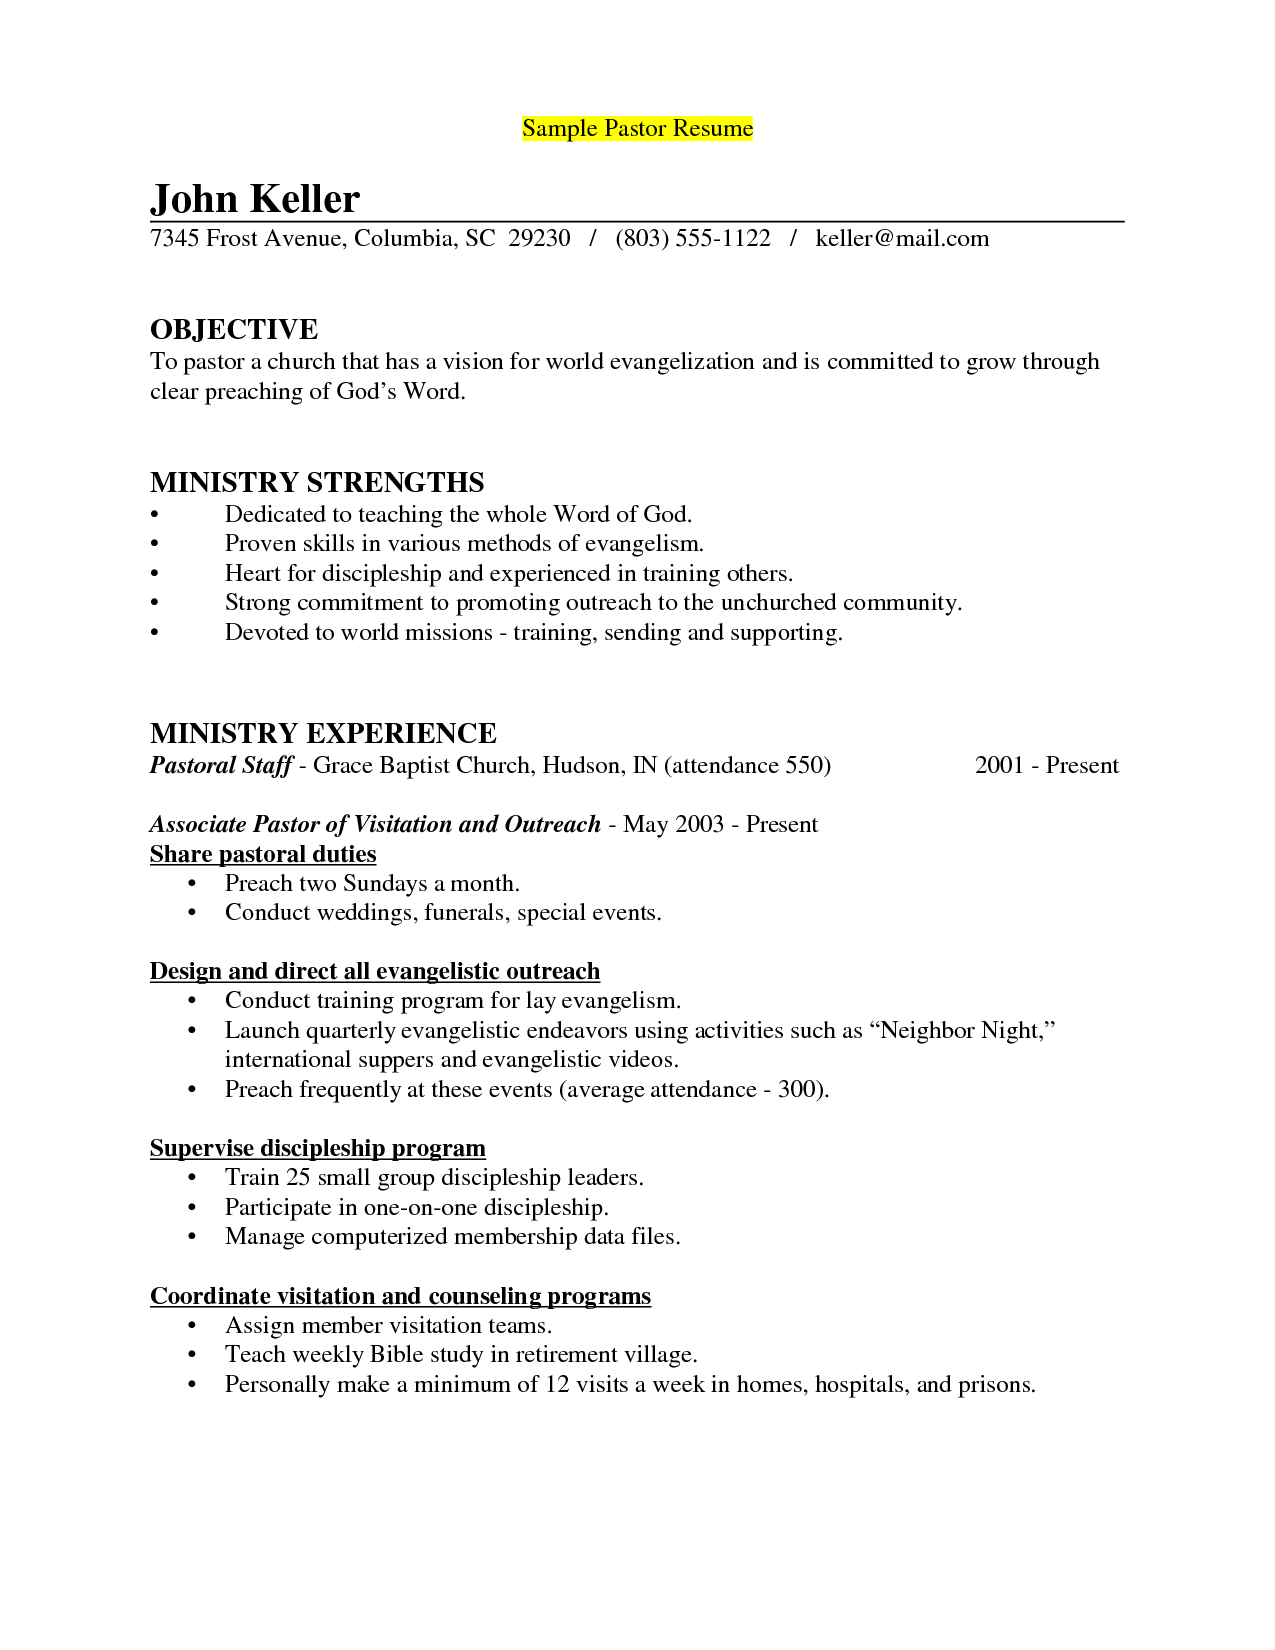 sample of a pastors resume – Sample Resumes